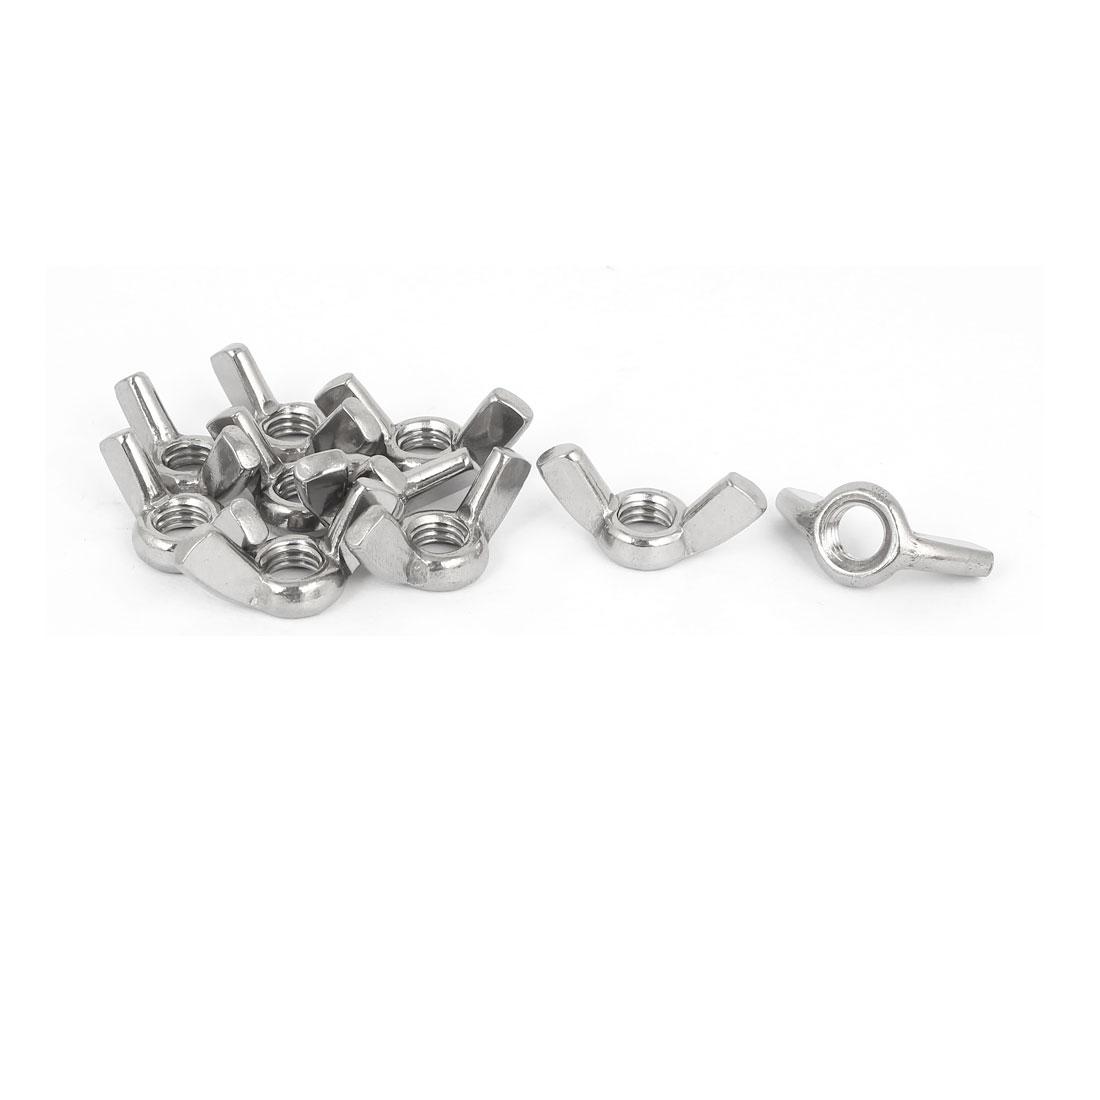 304 Stainless Steel Wingnut Butterfly Wing Nuts Silver Tone M8 10pcs